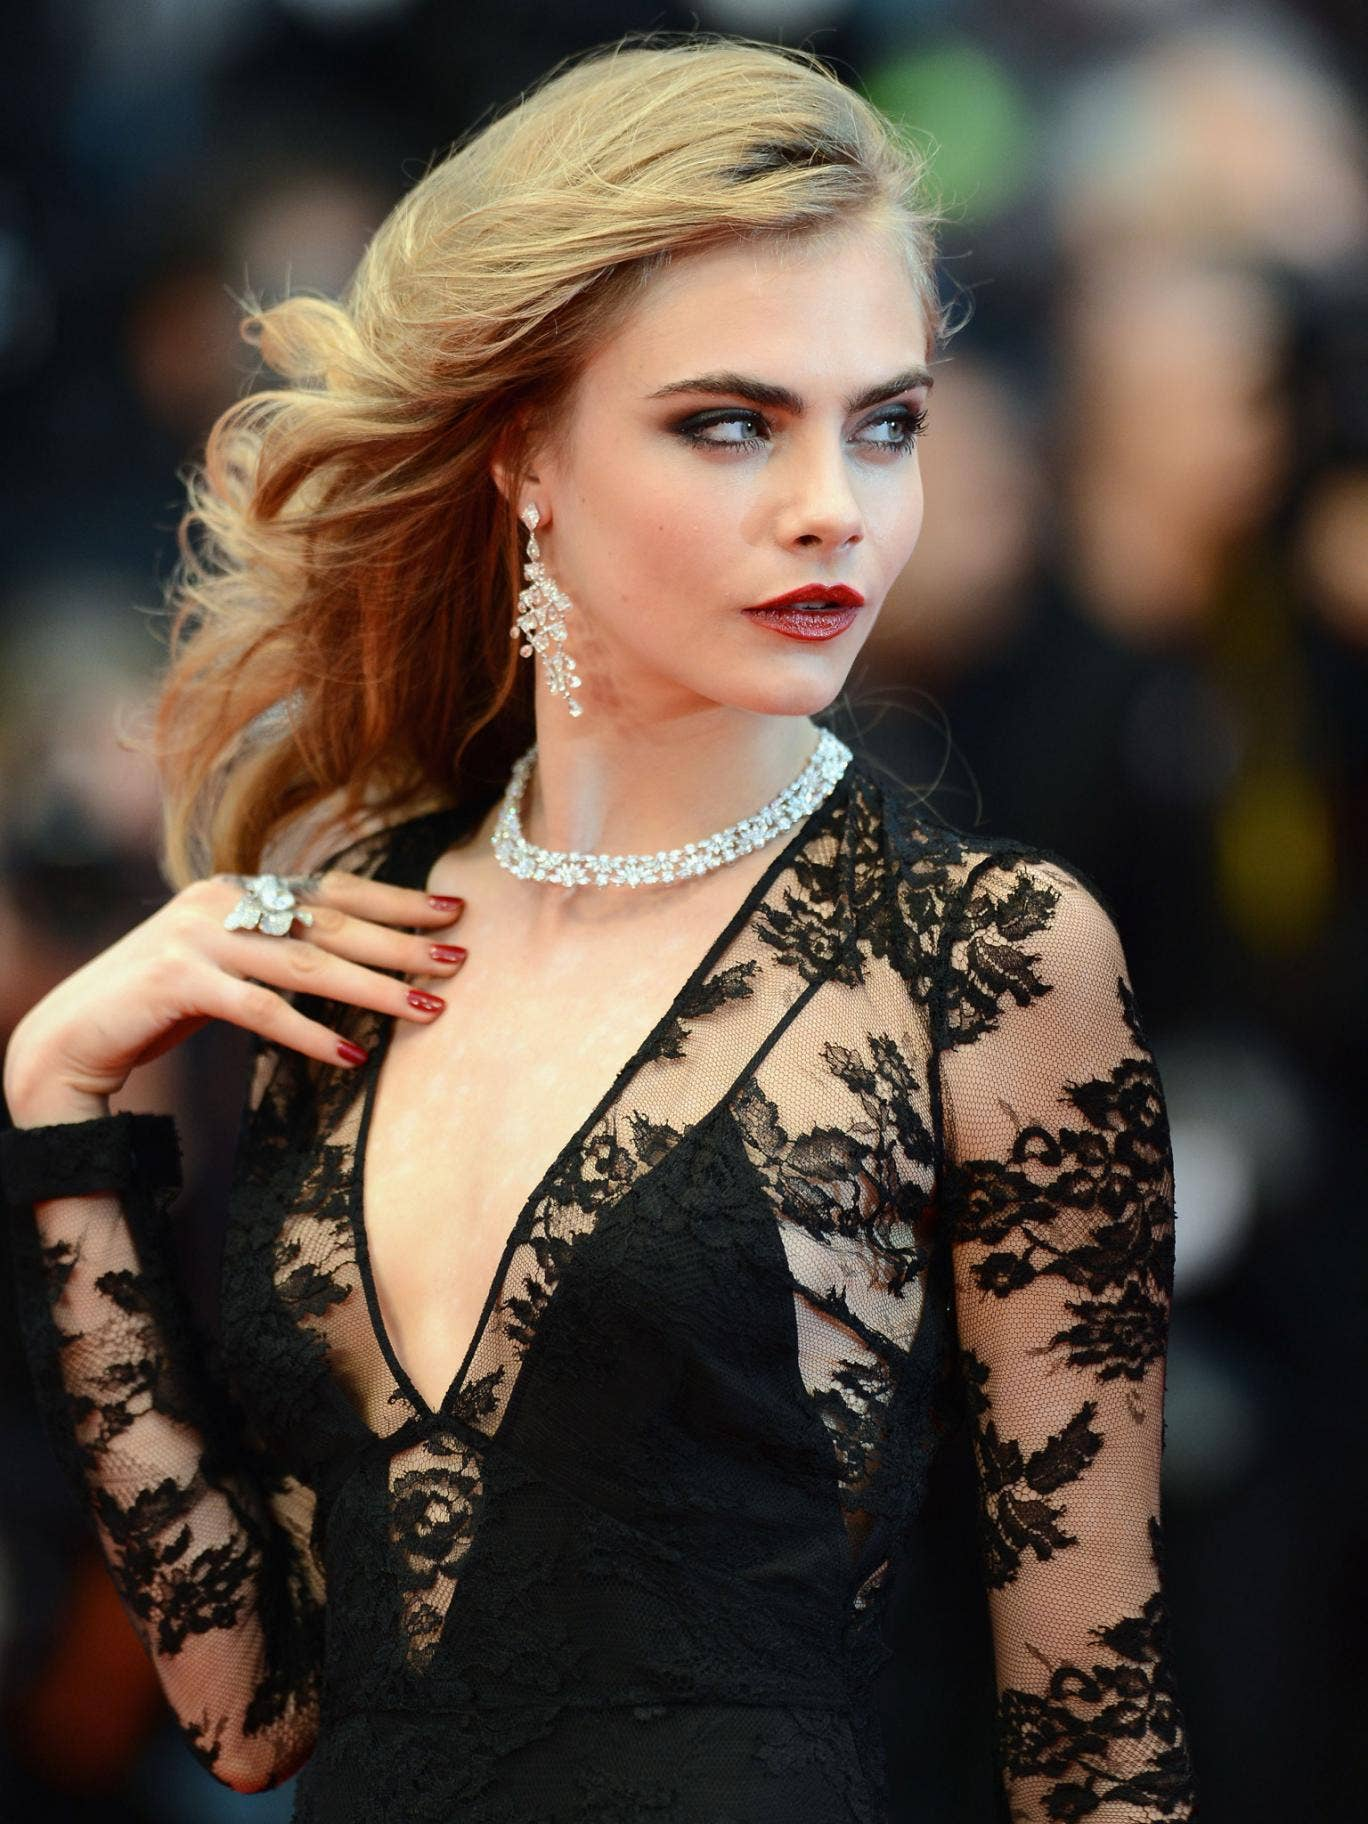 Cara Delevingne  wearing chopard jewels on the red carpet at the Cannes Film Festival